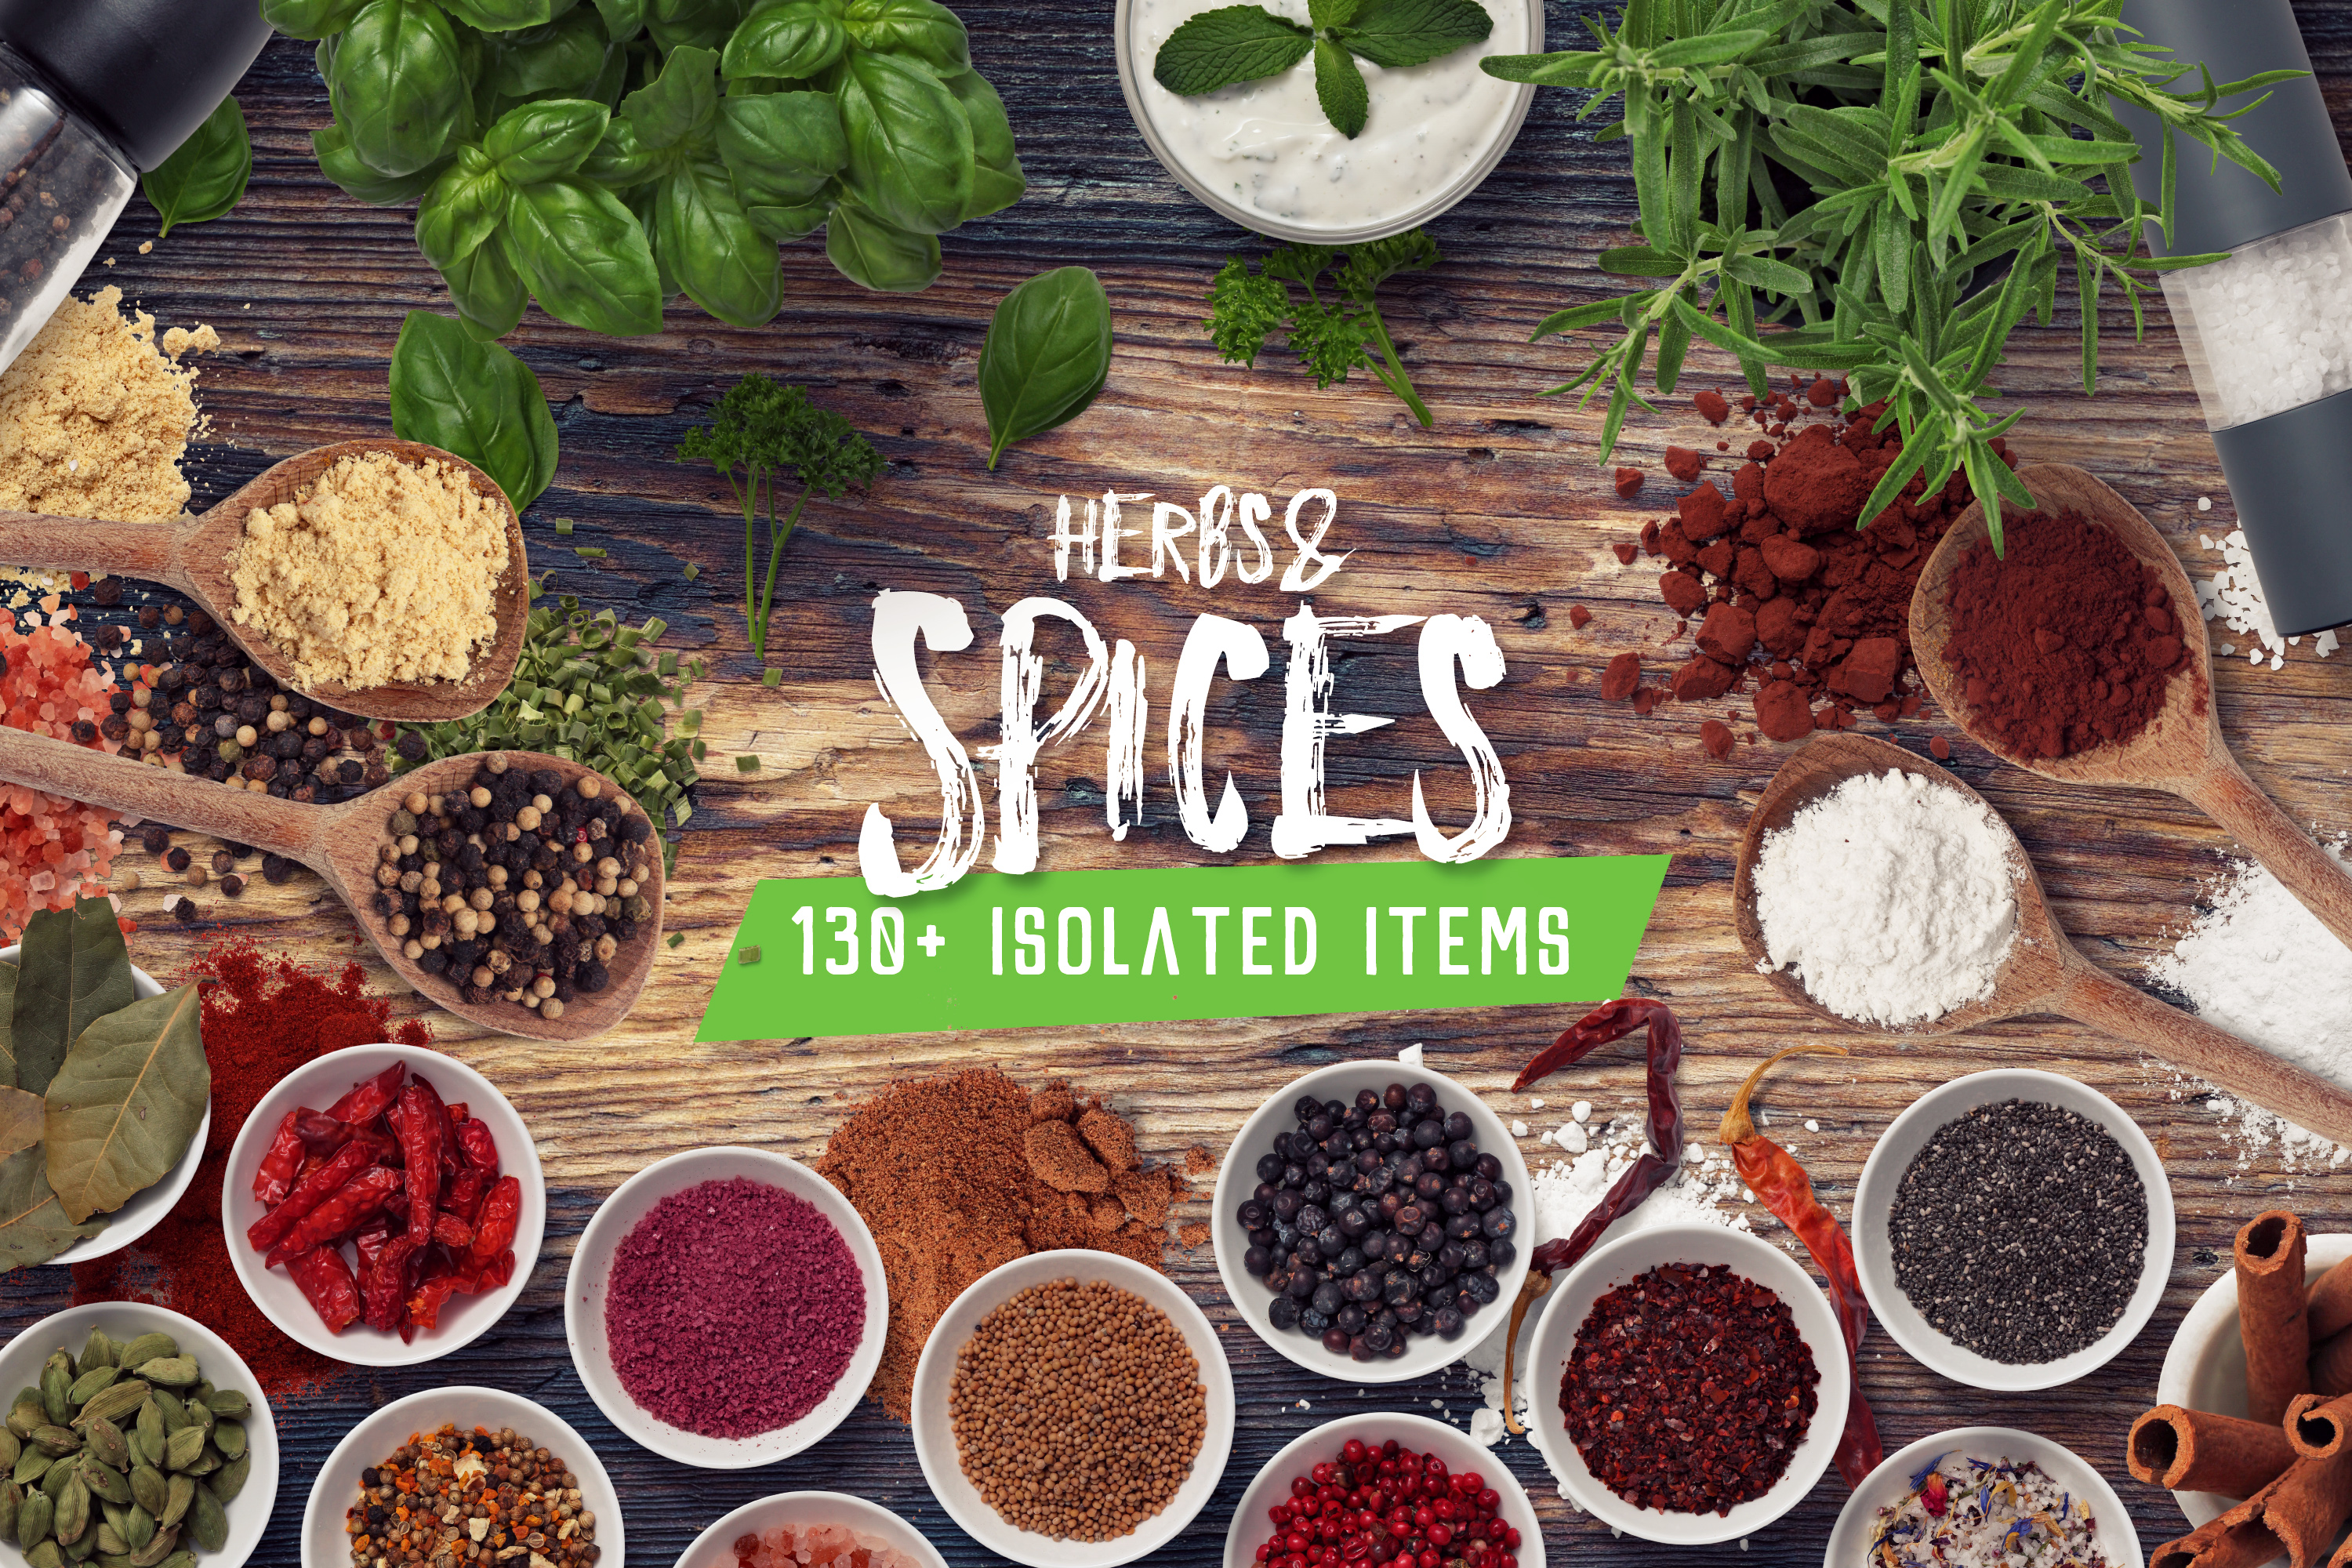 Herbs & Spices - Isolated Food Items example image 1